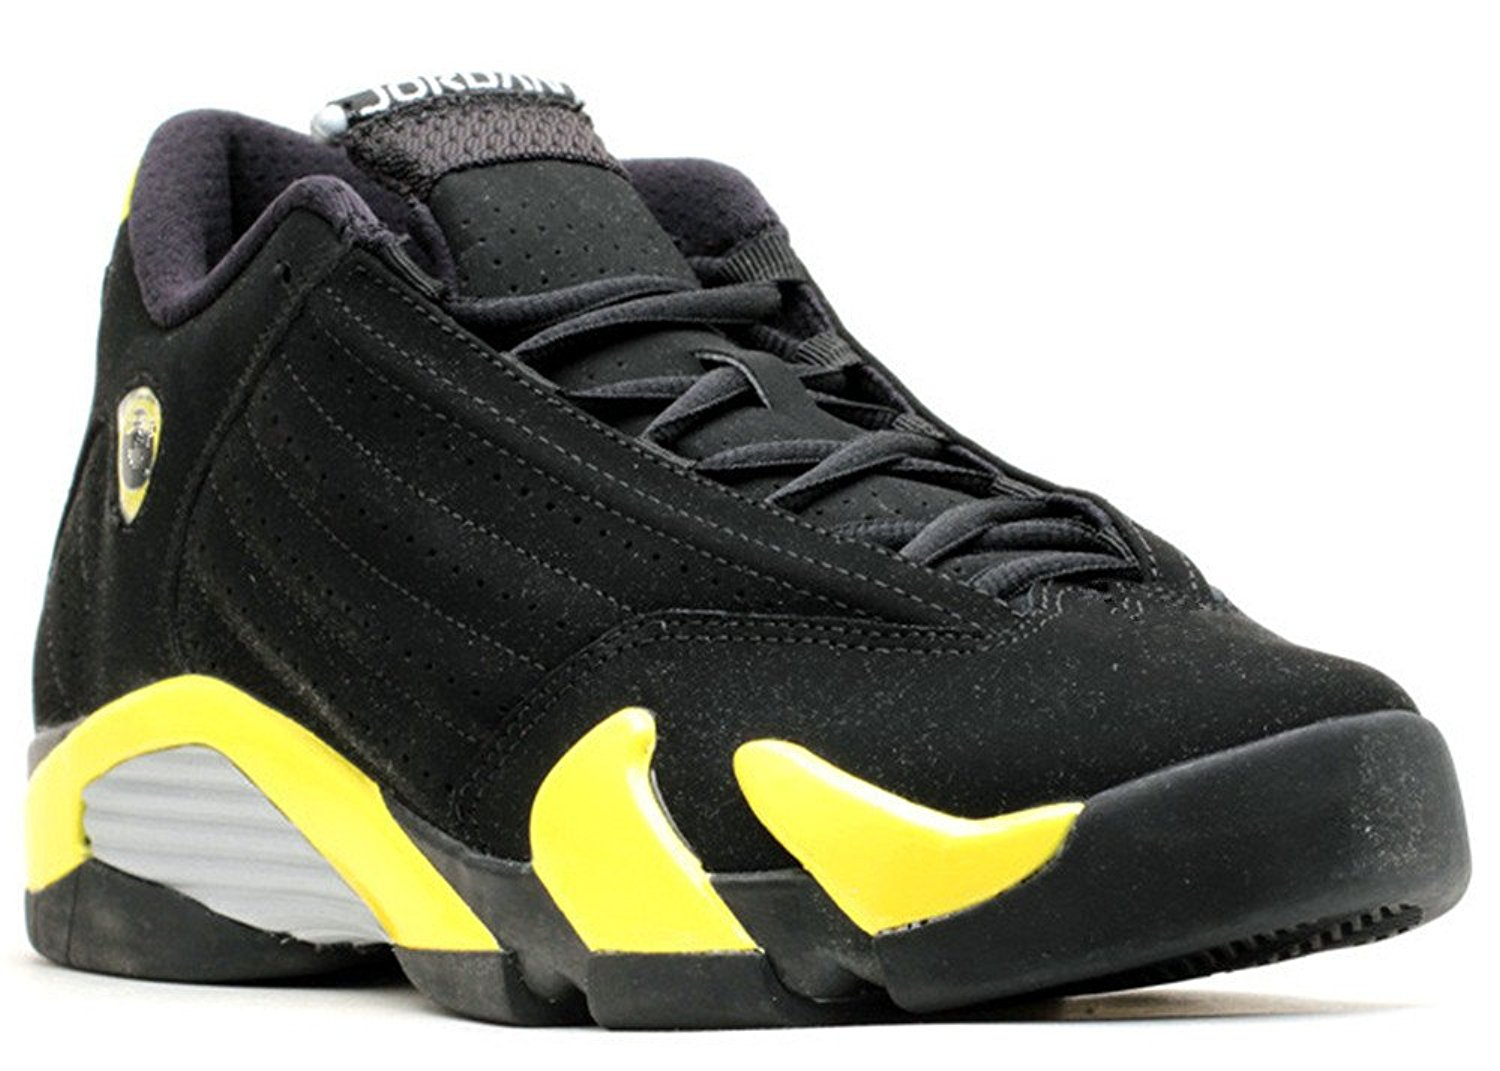 Ambar Zuiga Jurado Synthetic Basketball Shoe Air Jordan 14 Retro bg gs thunder Black vibrant yellow white 011963 2 True Flight Basketball Shoe